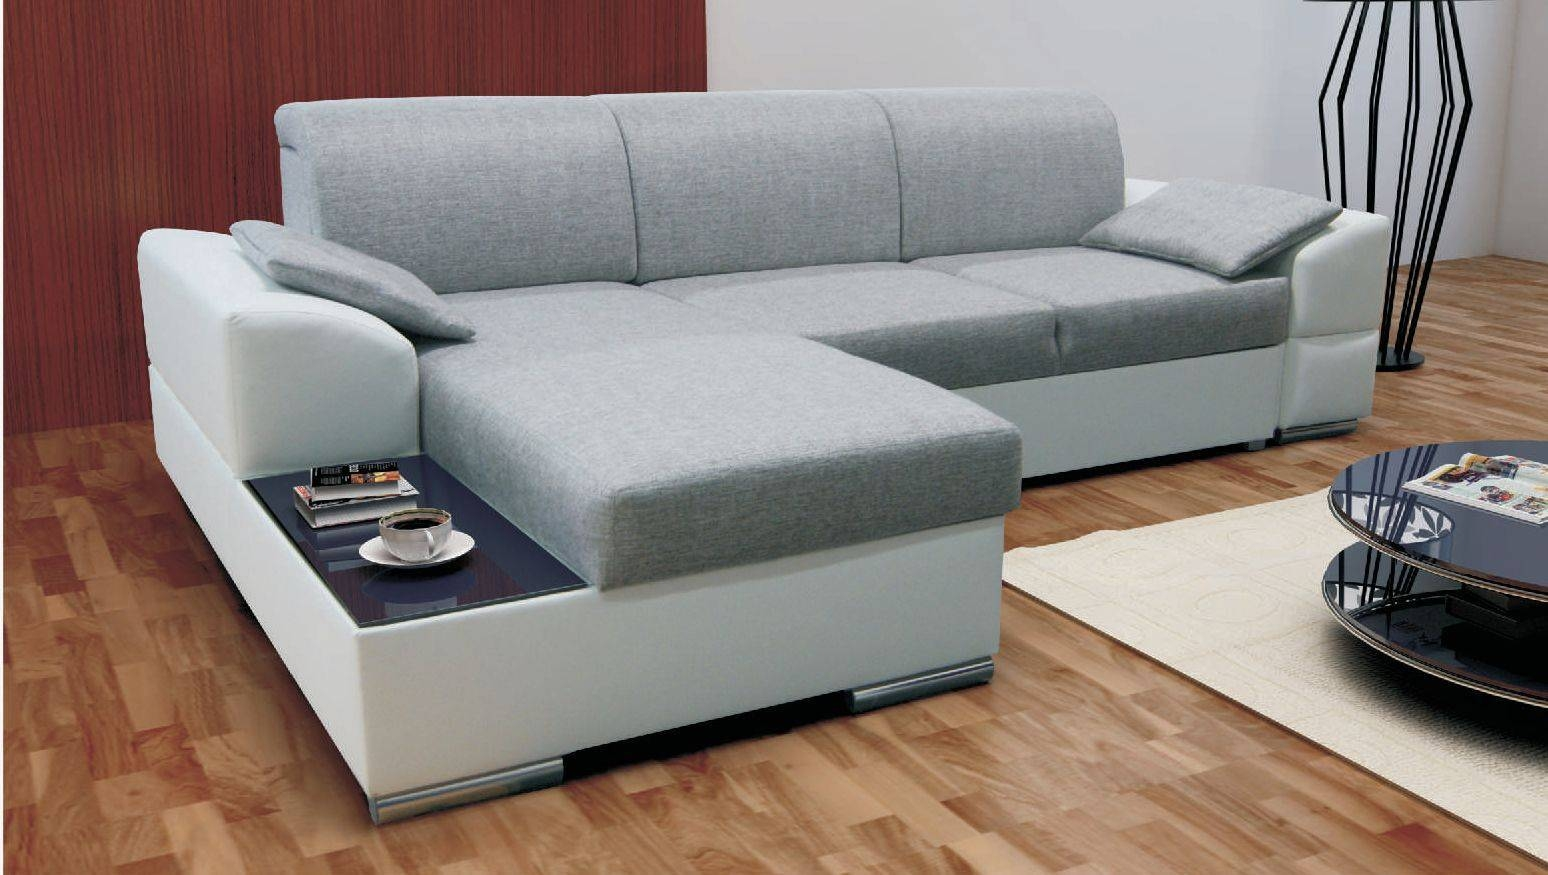 Sofas Center : Unusual Corner Sofa Withrage Picture Design Large Within Corner Sofa Bed With Storage Ikea (View 27 of 30)